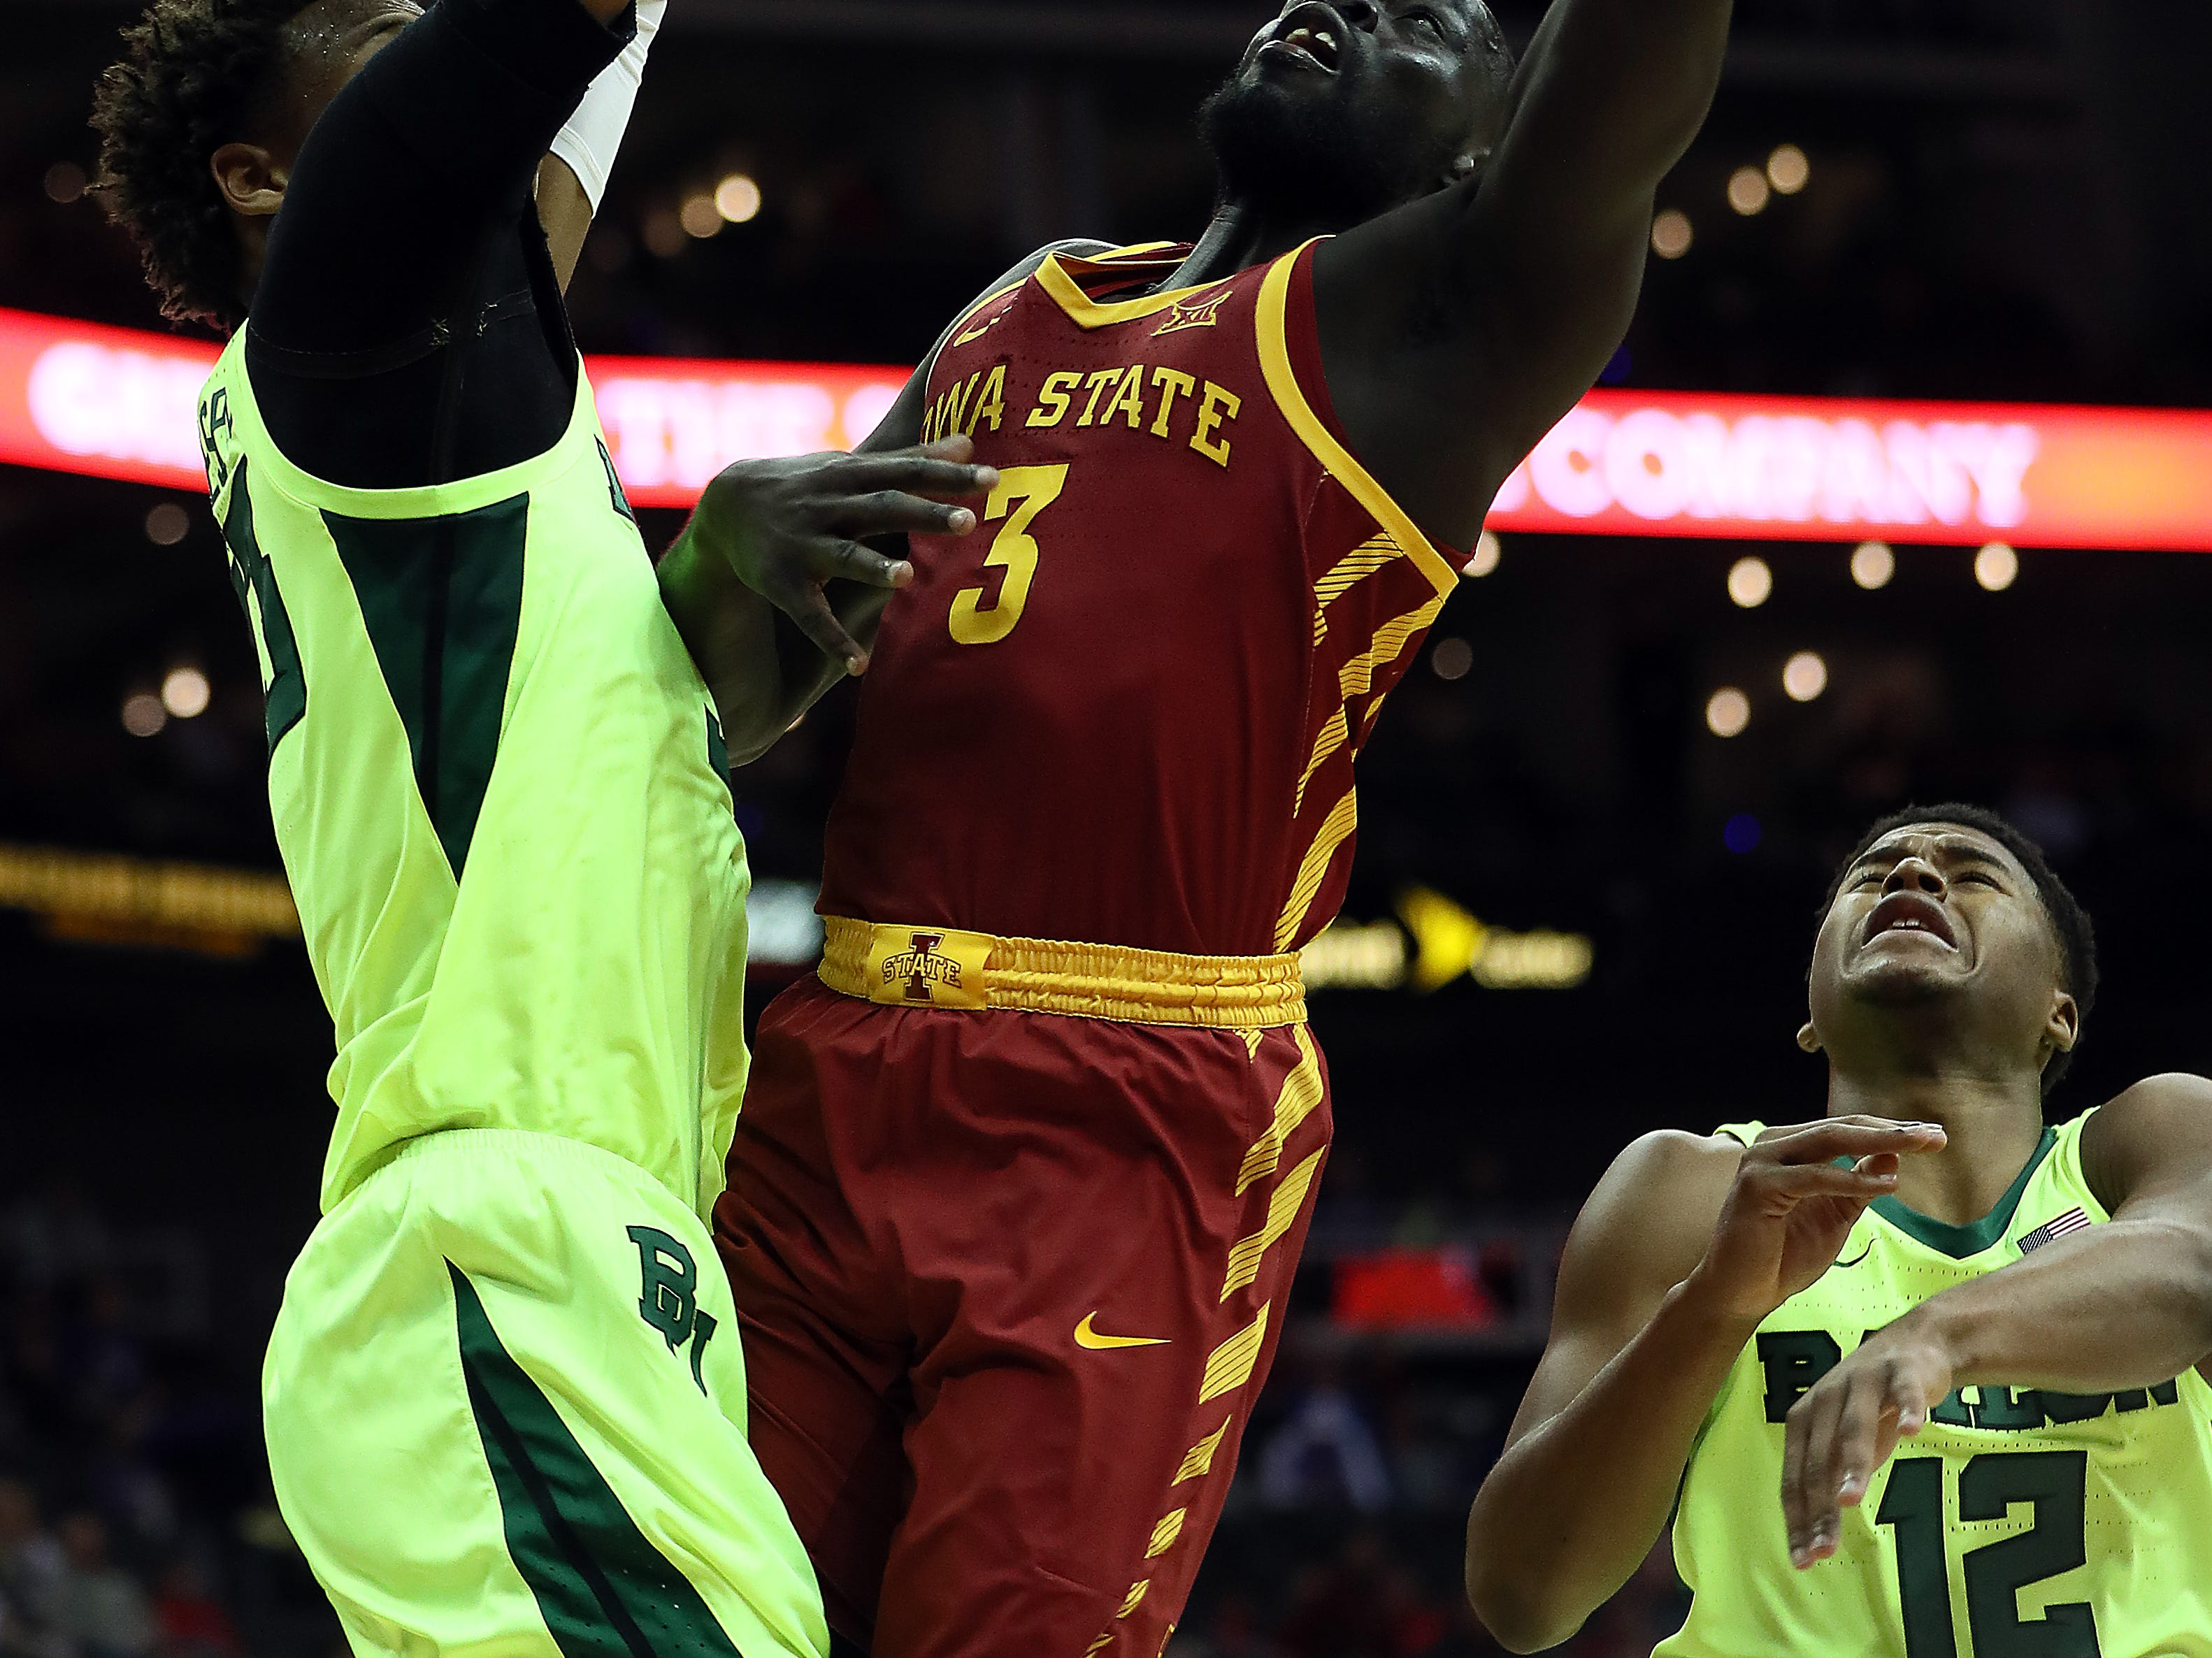 KANSAS CITY, MISSOURI - MARCH 14:  Marial Shayok #3 of the Iowa State Cyclones shoots over Freddie Gillespie #33 of the Baylor Bears during the quarterfinal game of the Big 12 Basketball Tournament at Sprint Center on March 14, 2019 in Kansas City, Missouri. (Photo by Jamie Squire/Getty Images)